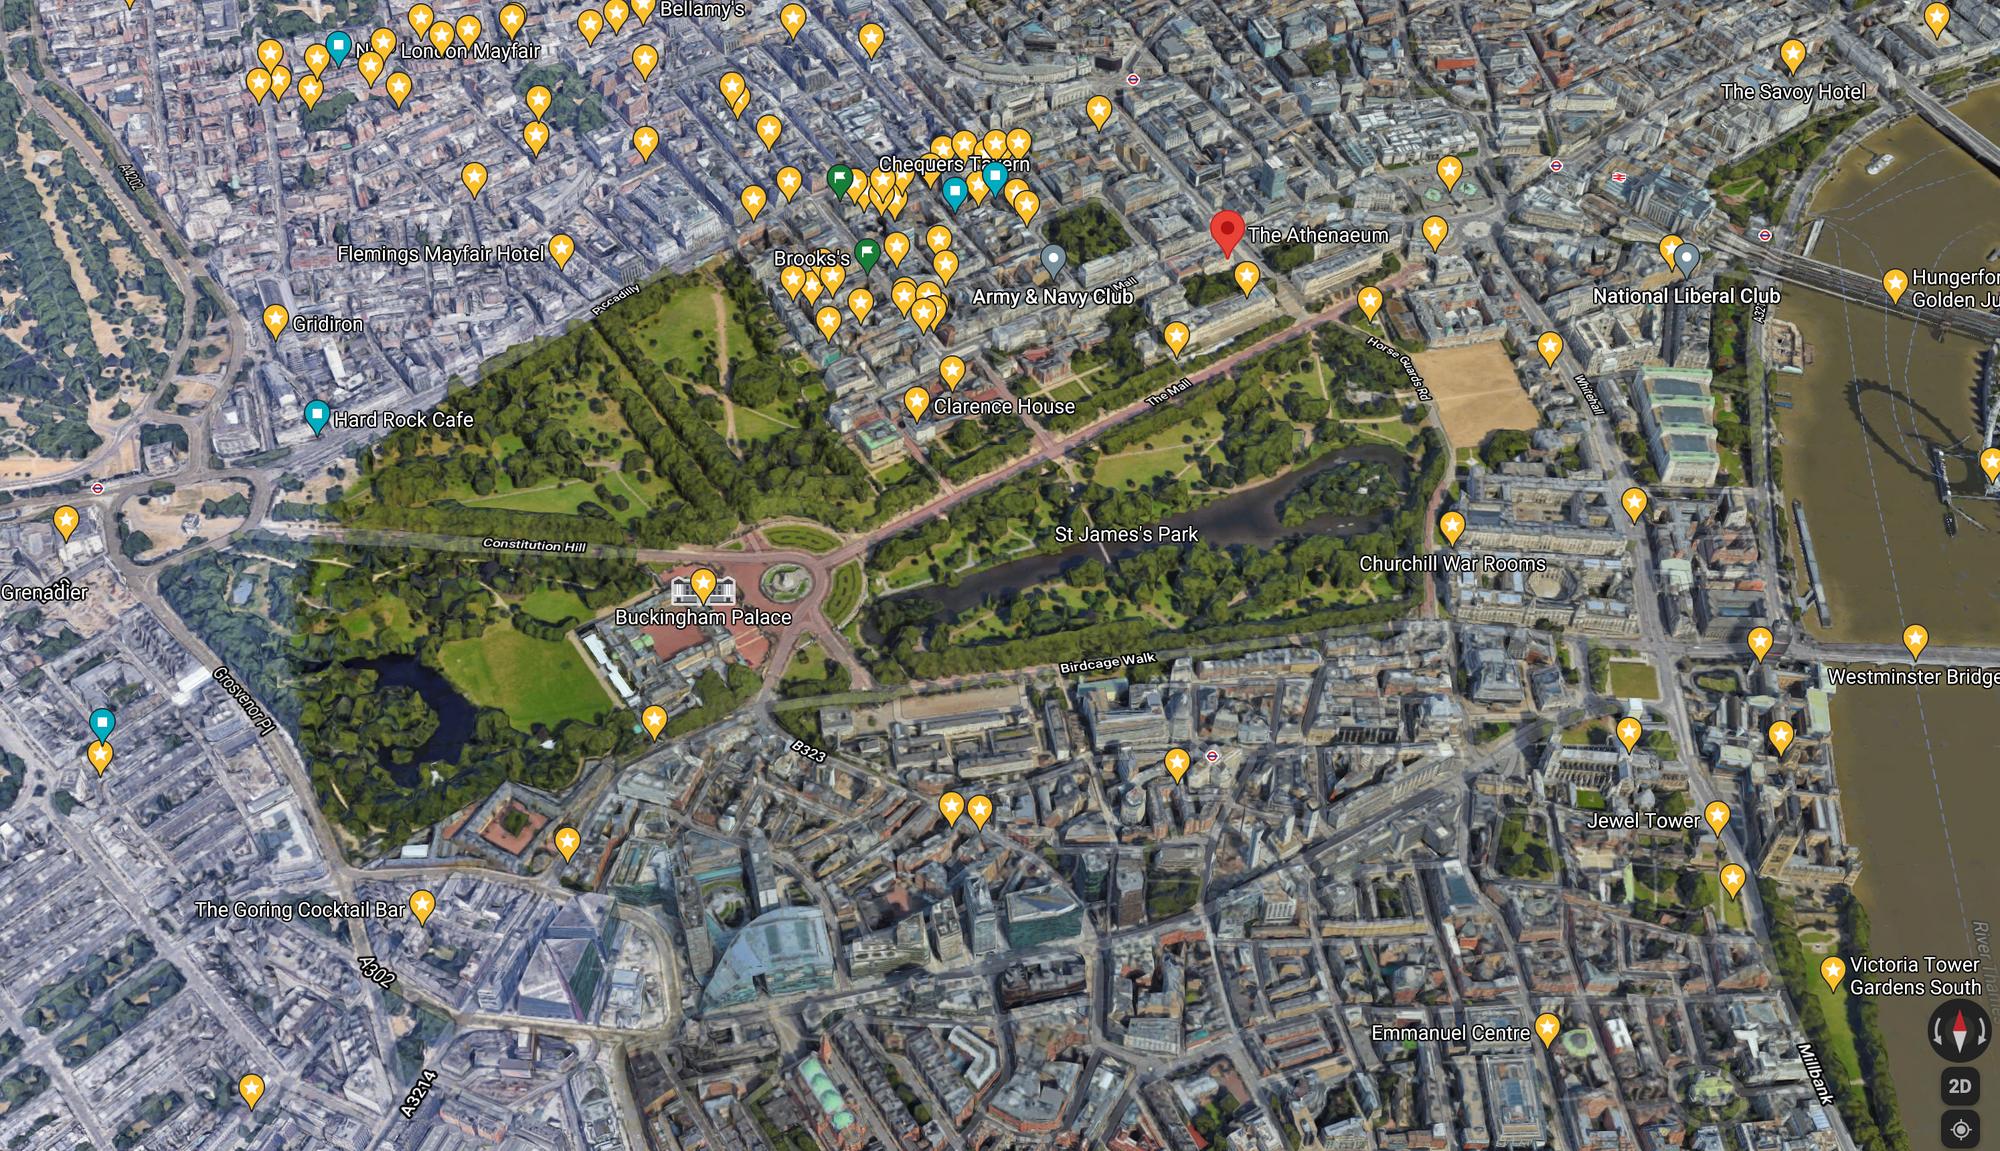 Present day arial view of The City of Westminster, including The Parish of St James's and Mayfair: Google Earth 2021